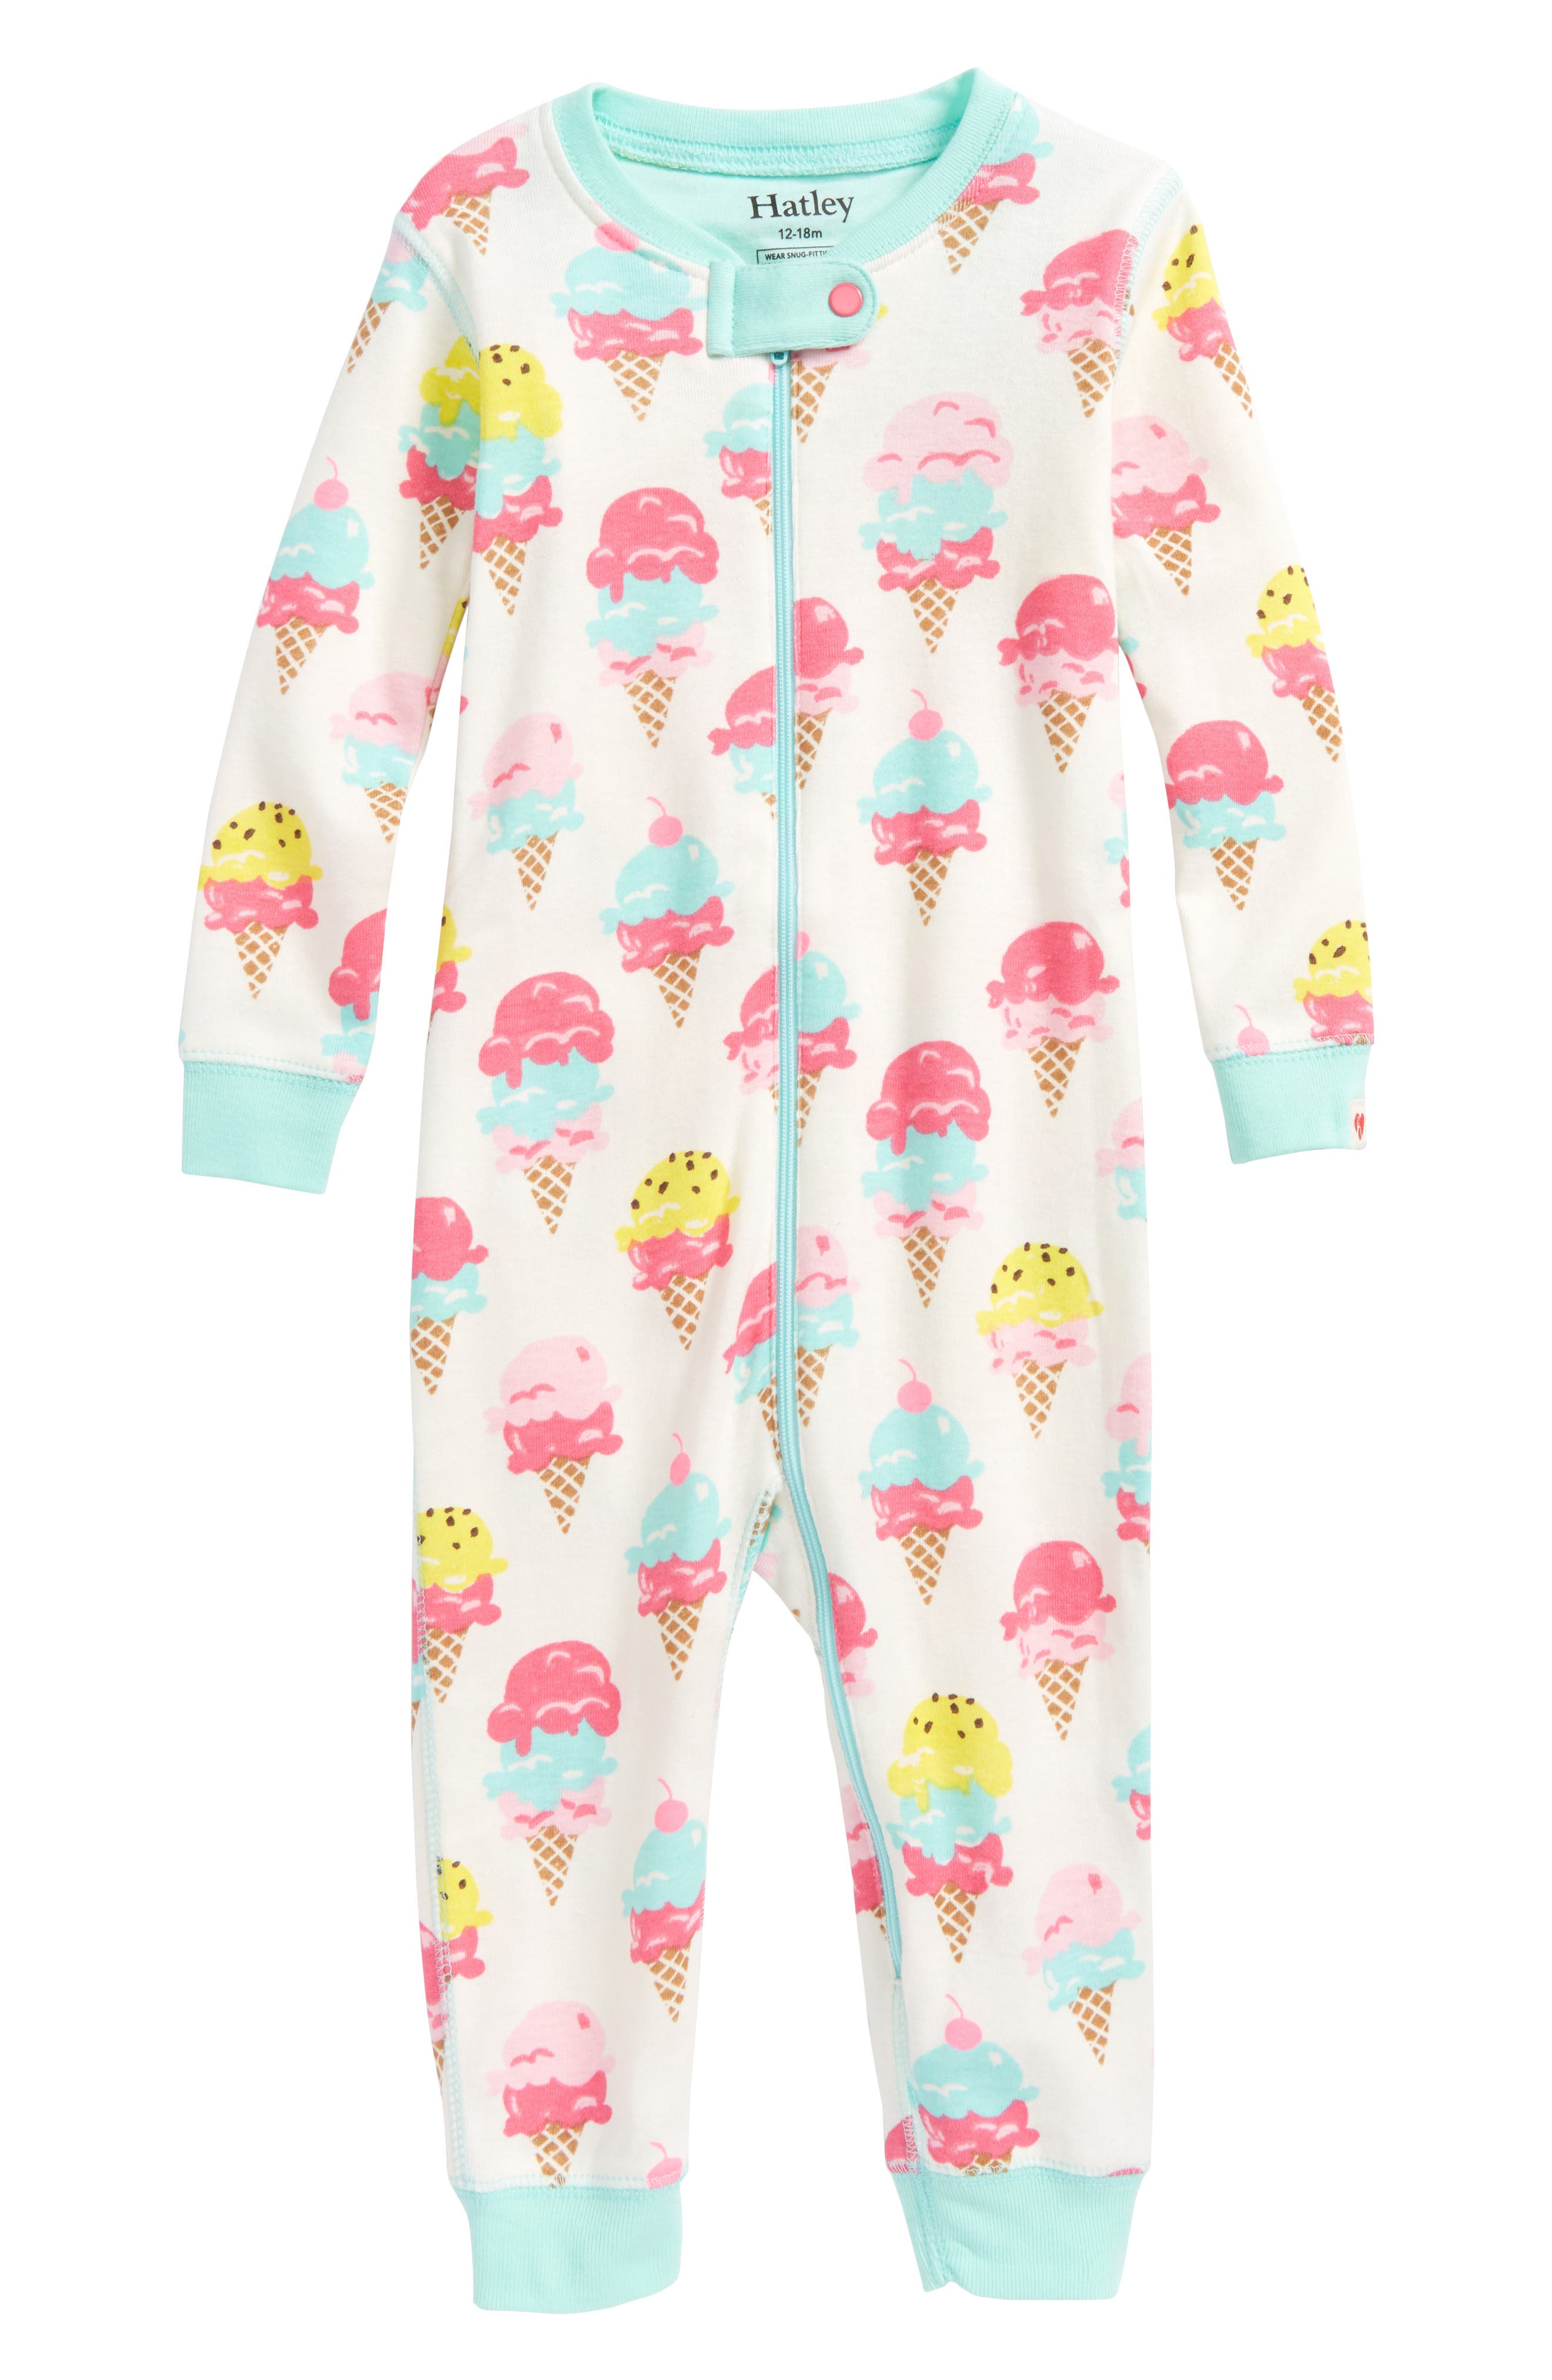 Hatley Ice Cream Treats Organic Cotton Fitted One-Piece Pajamas (Baby Girls)